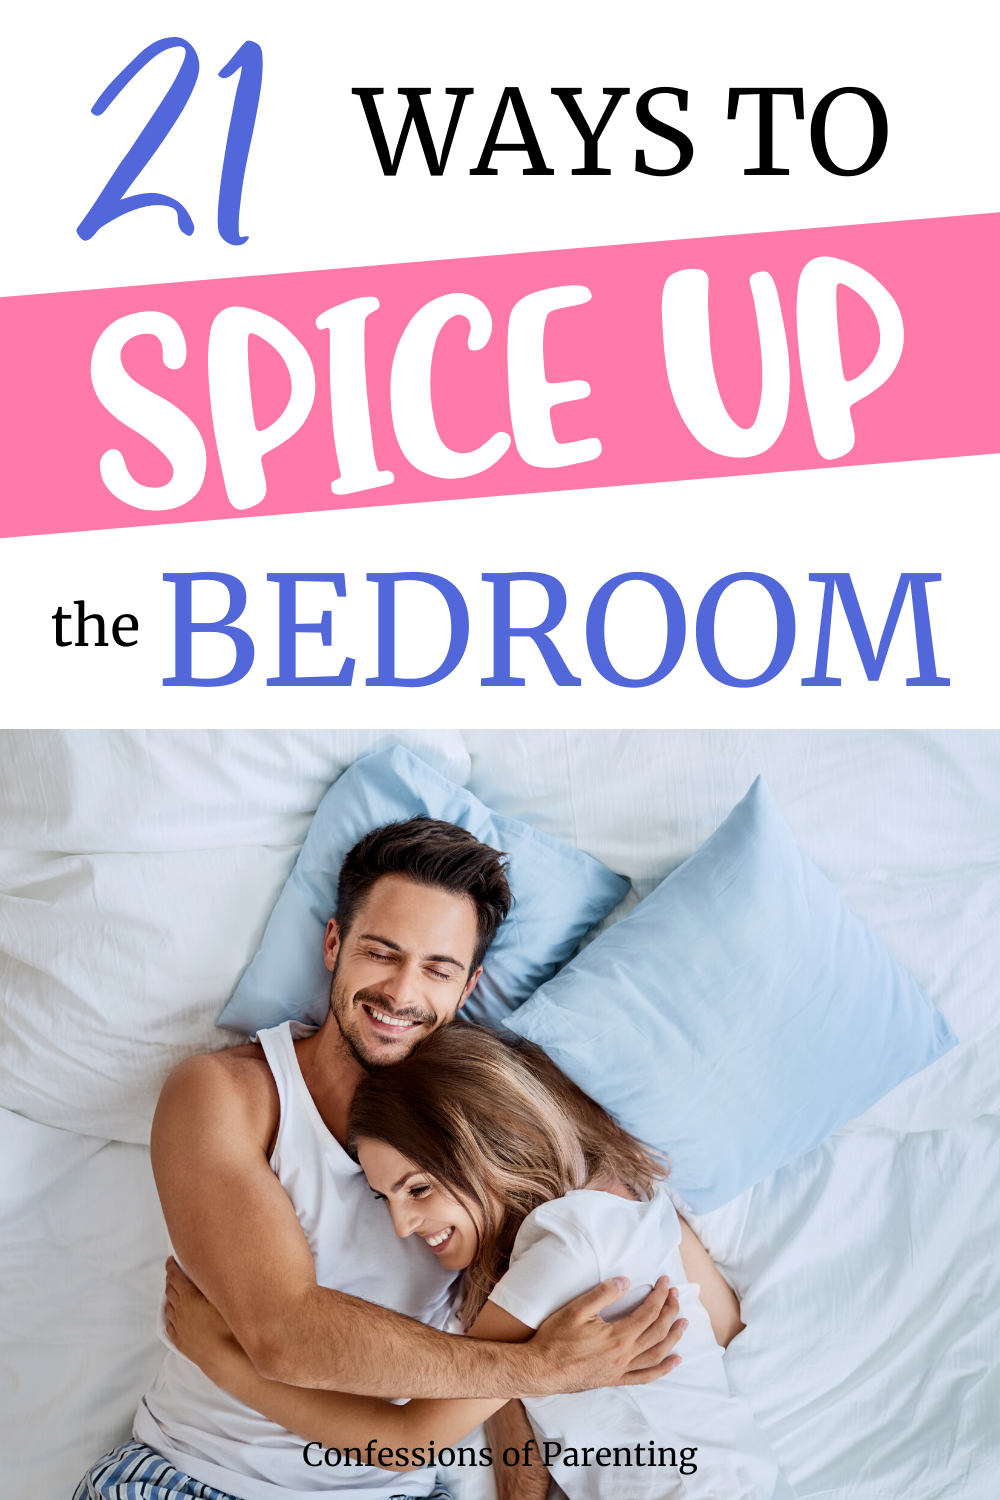 21 Fun Ideas To Spice Up The Bedroom (That Work